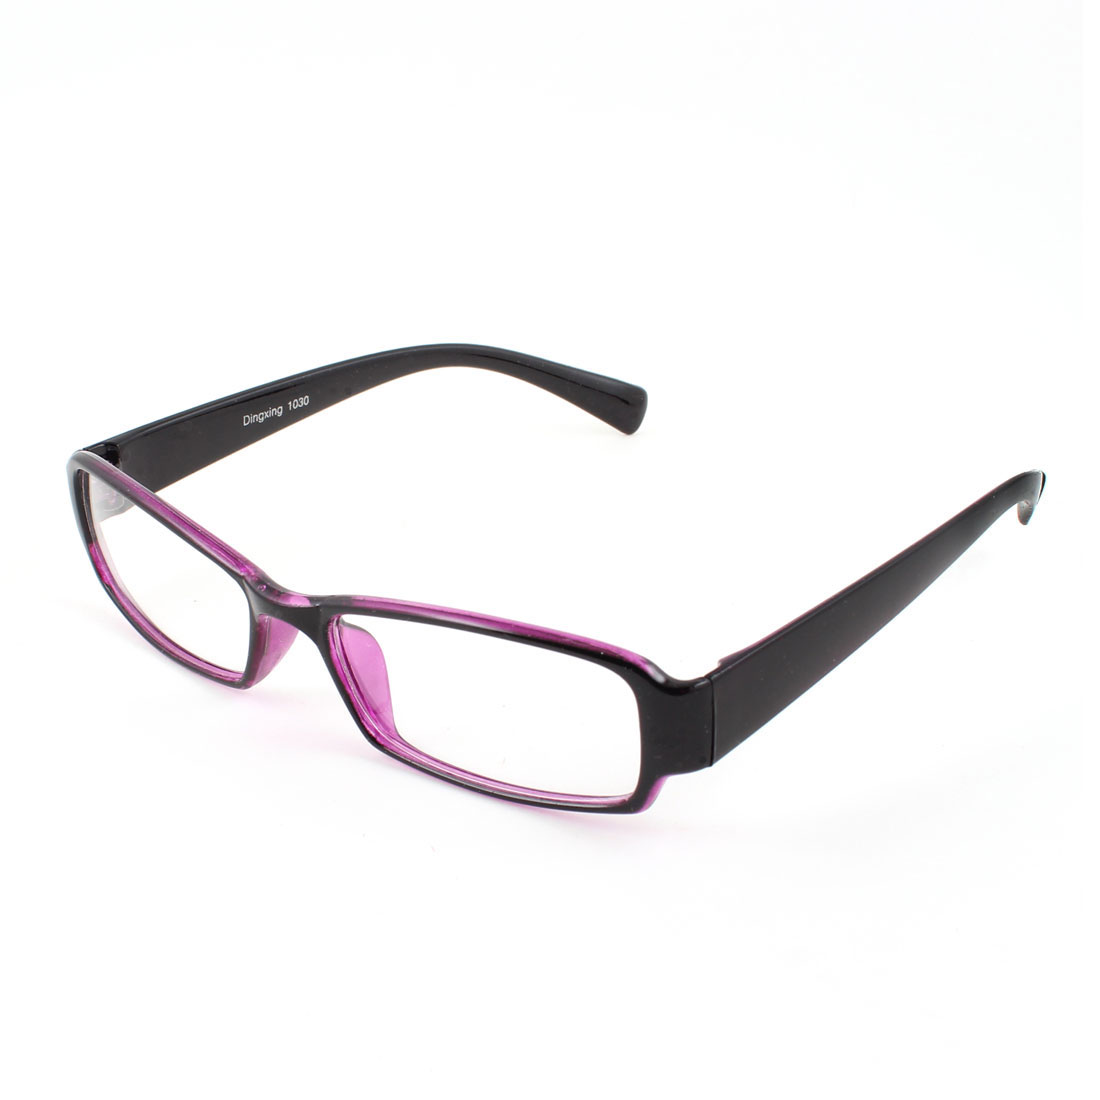 Unisex Plastic Frame Clear Lens Plain Glasses Eyeglasses Spectacles Black Purple